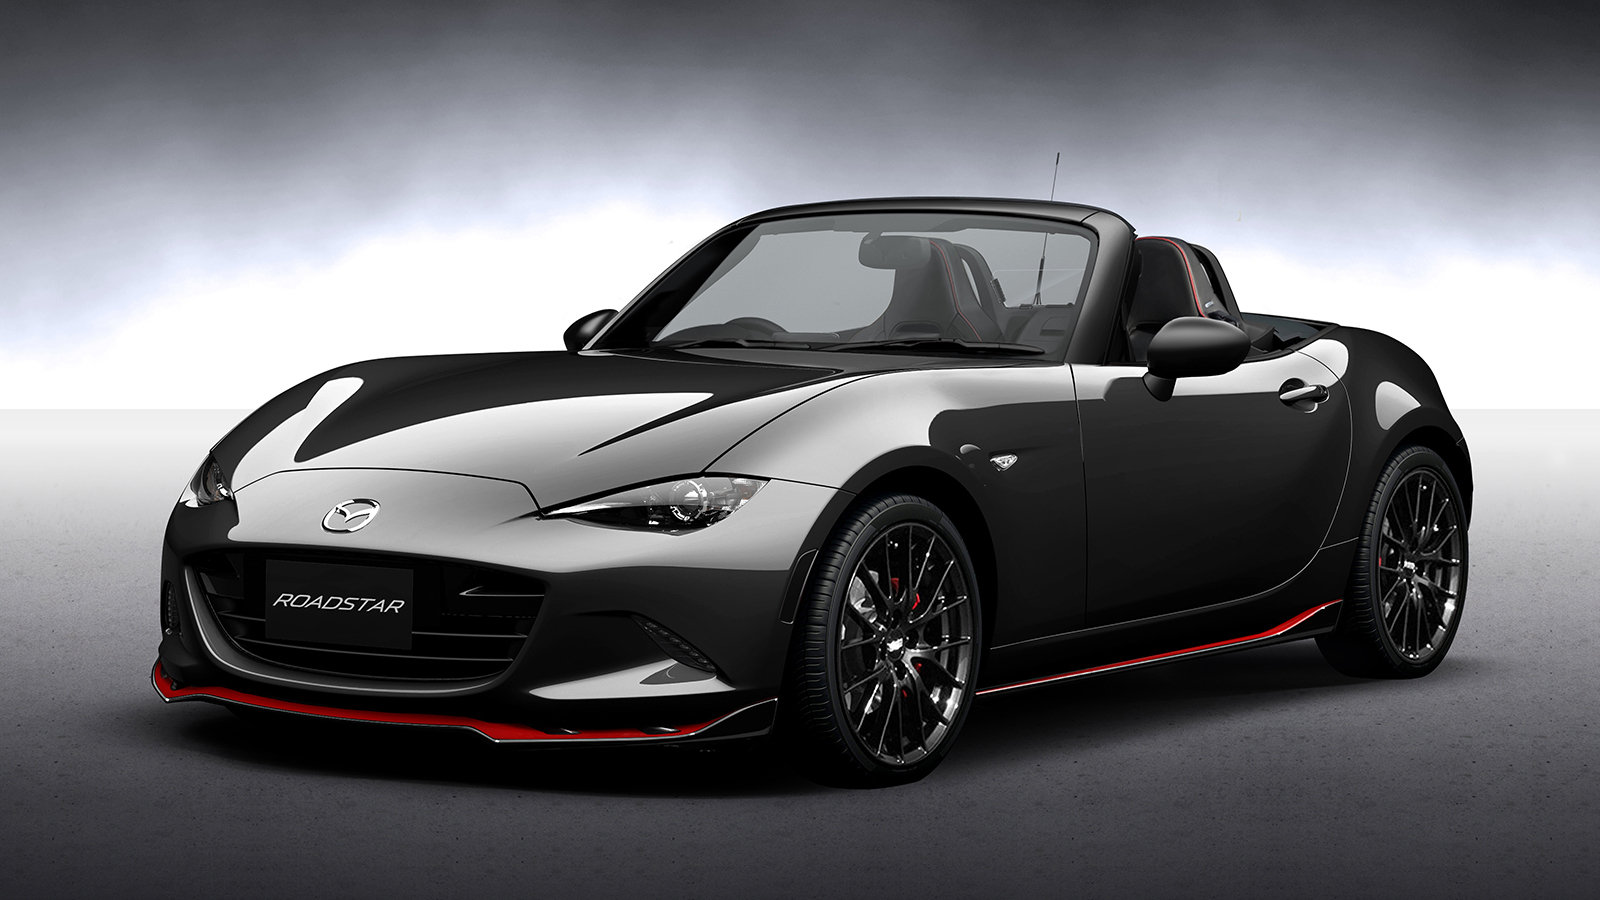 2016 Mazda Roadster RS Racing Concept